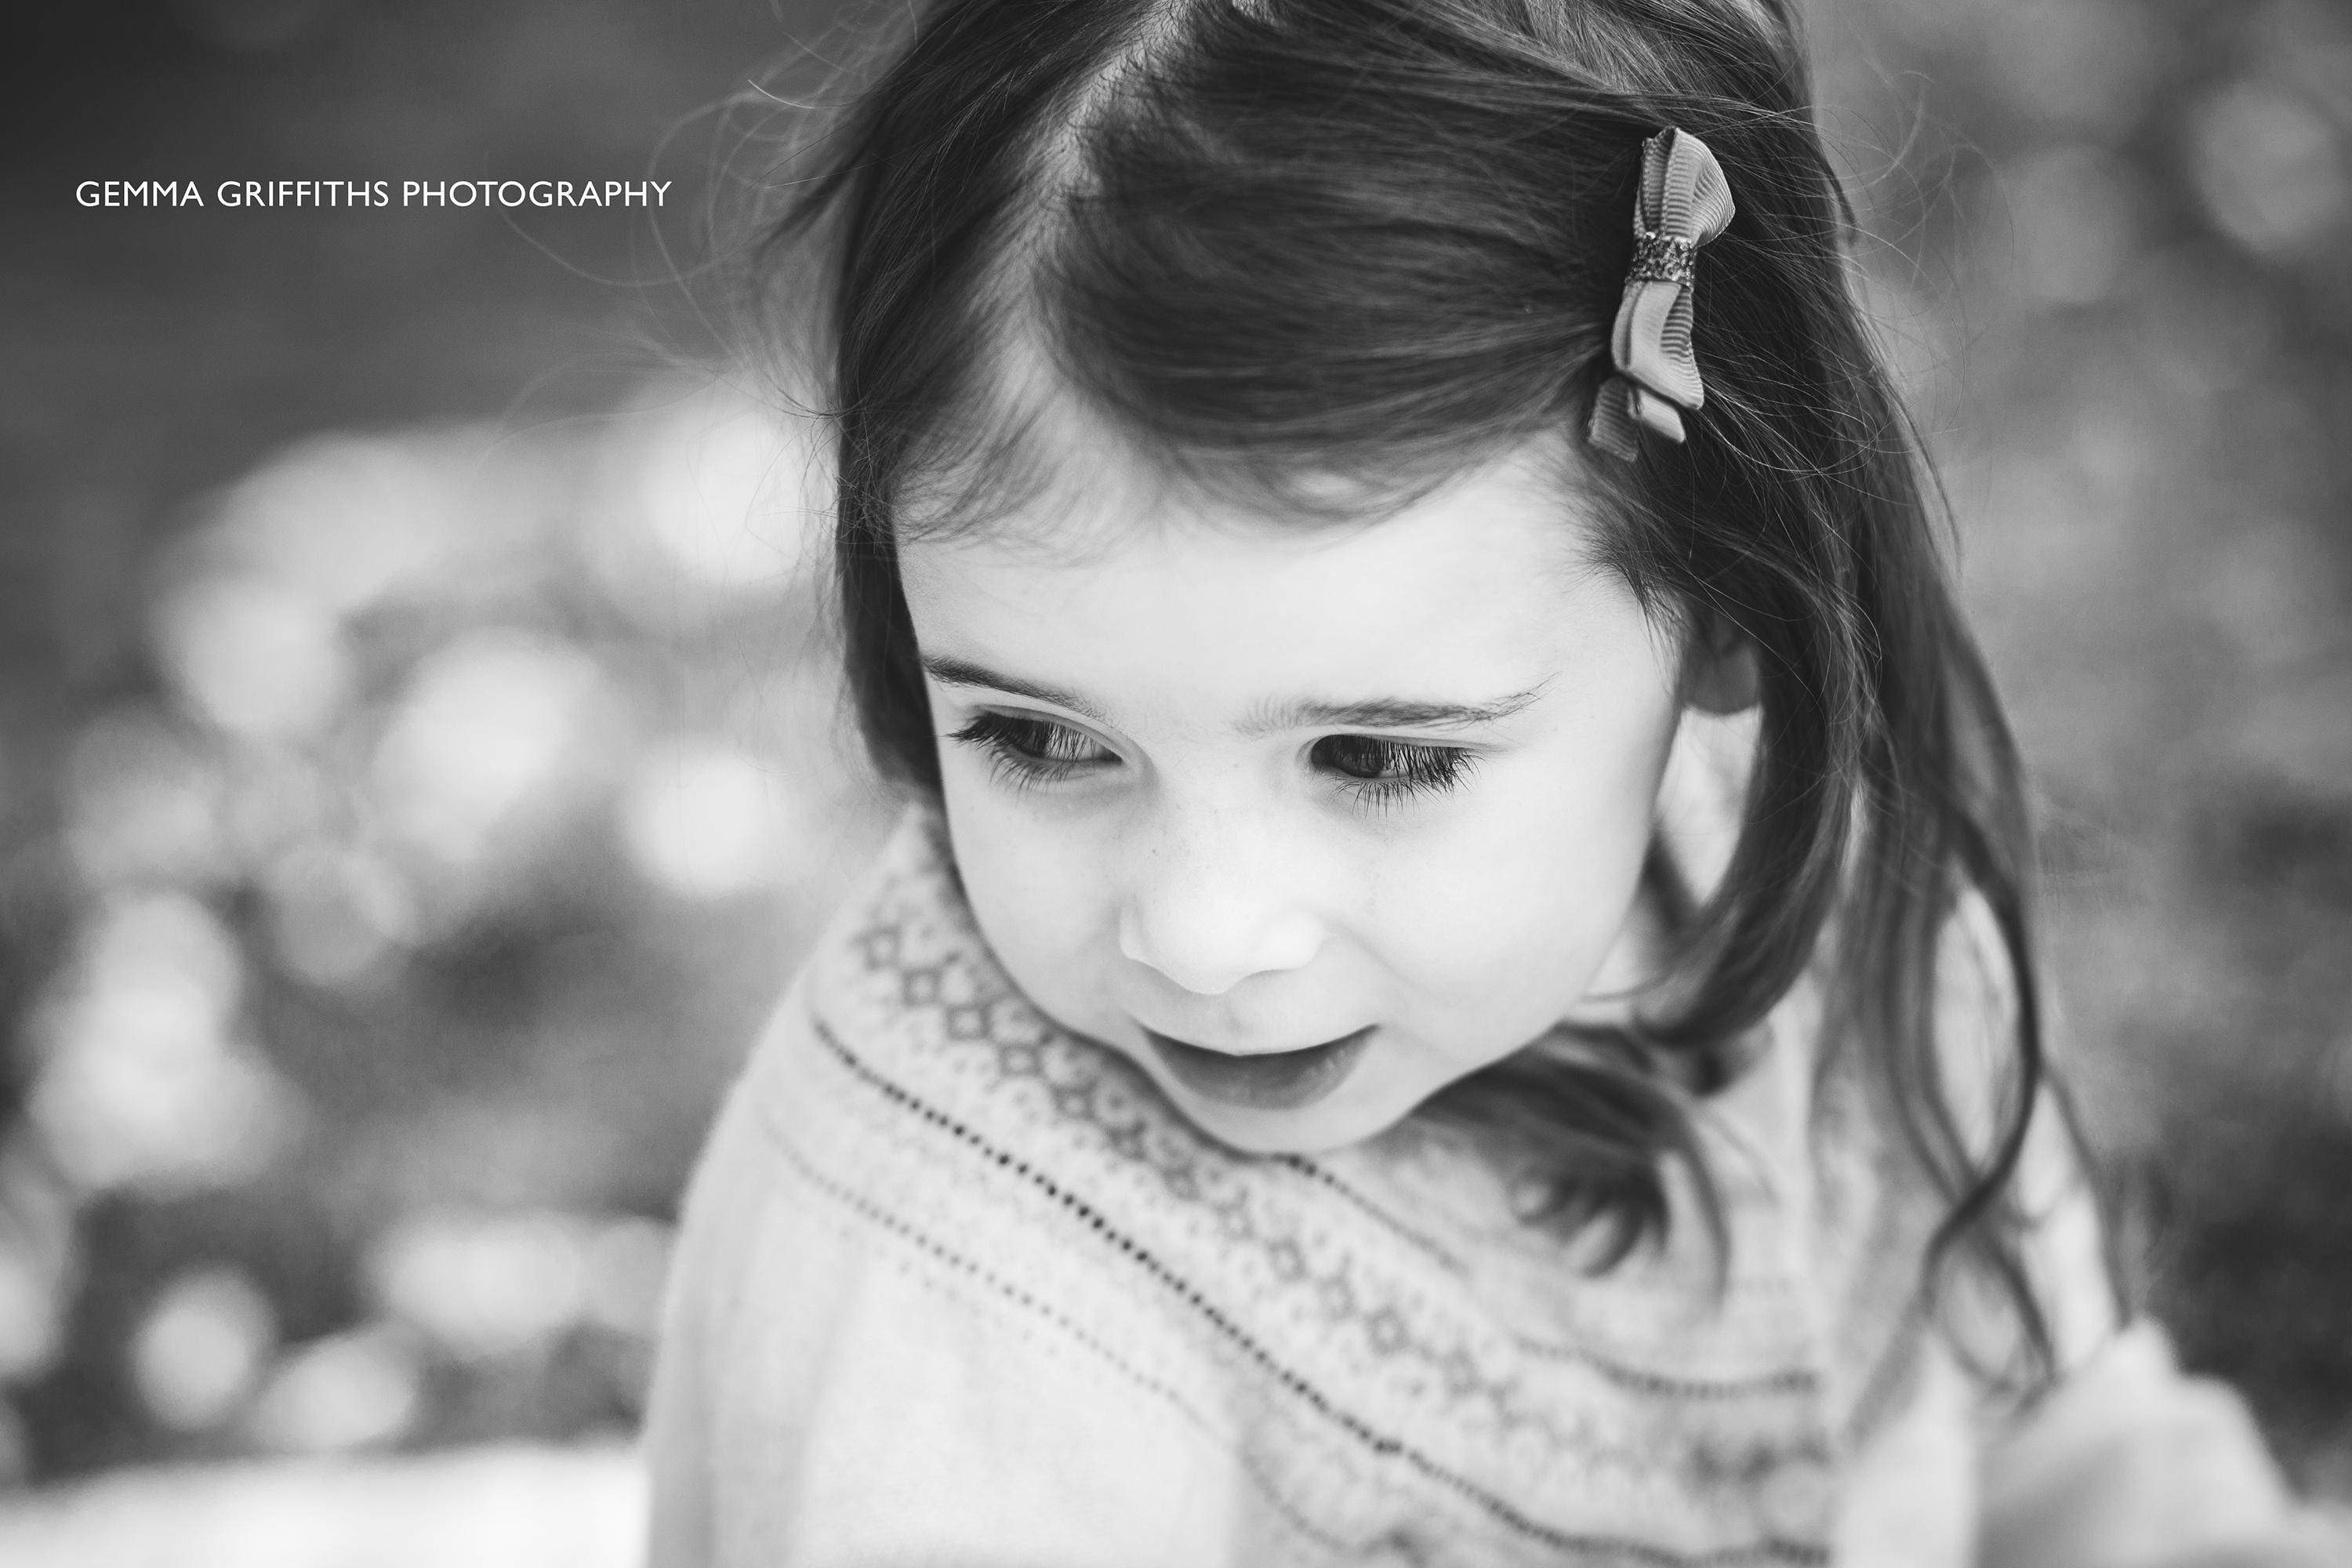 Black and white image of a little girl